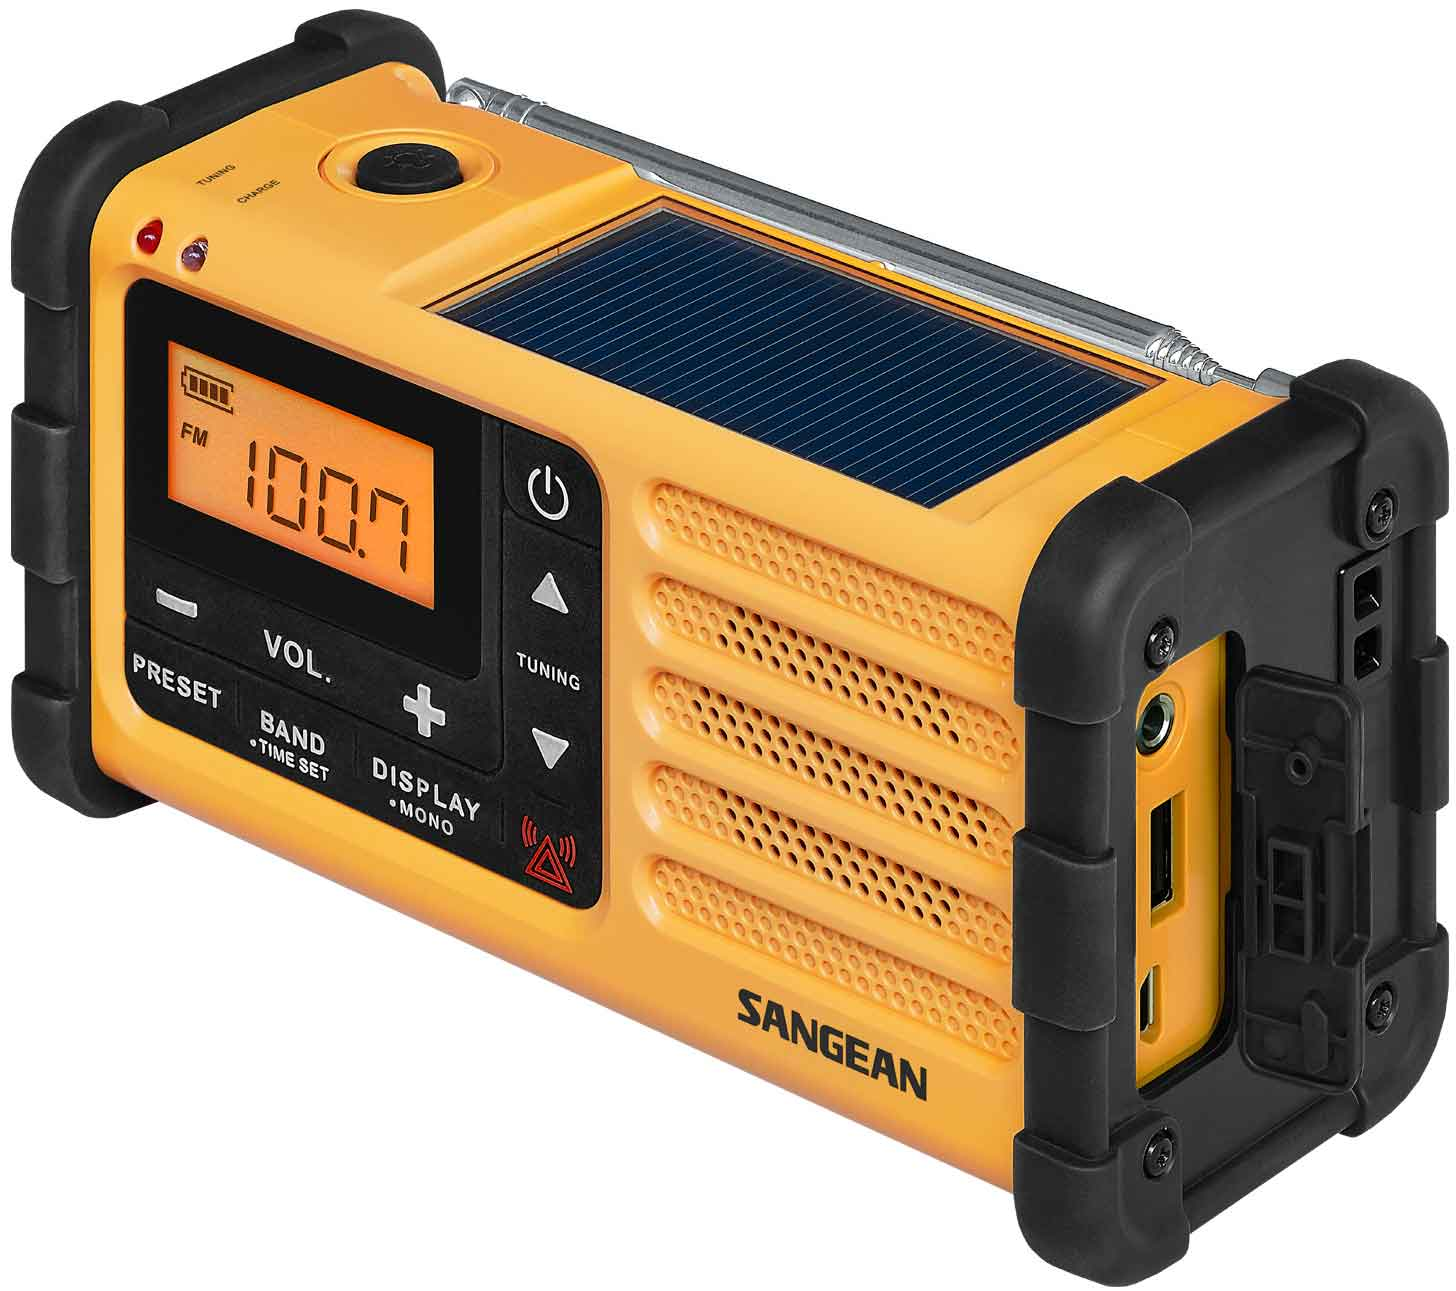 Sangean Solar power FM/AM